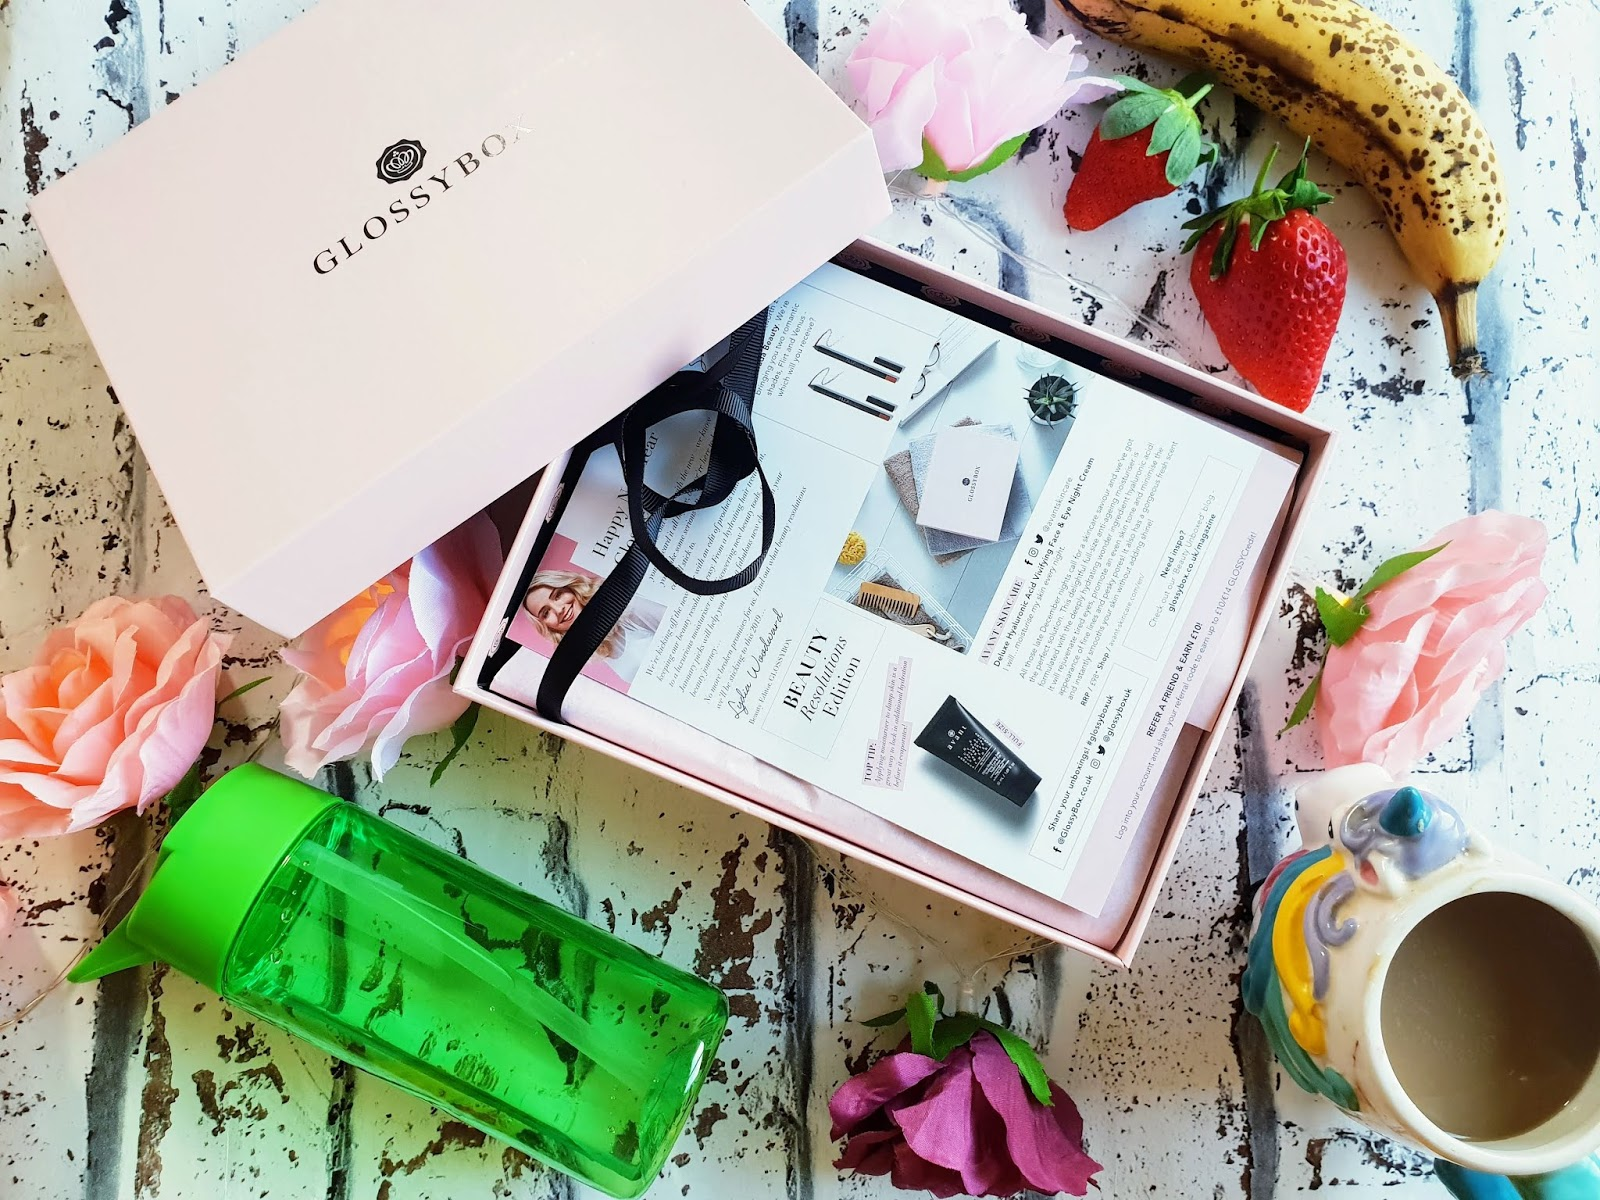 January Glossybox 2019 review